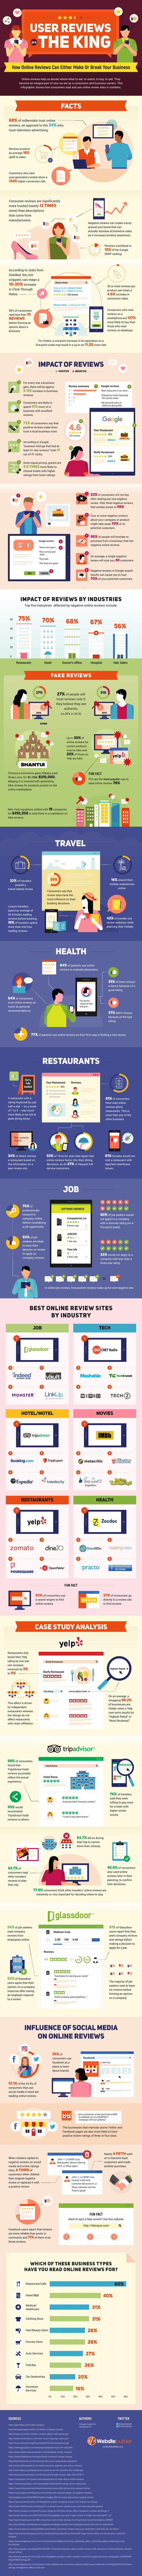 Infographic Online Reviews by Industry